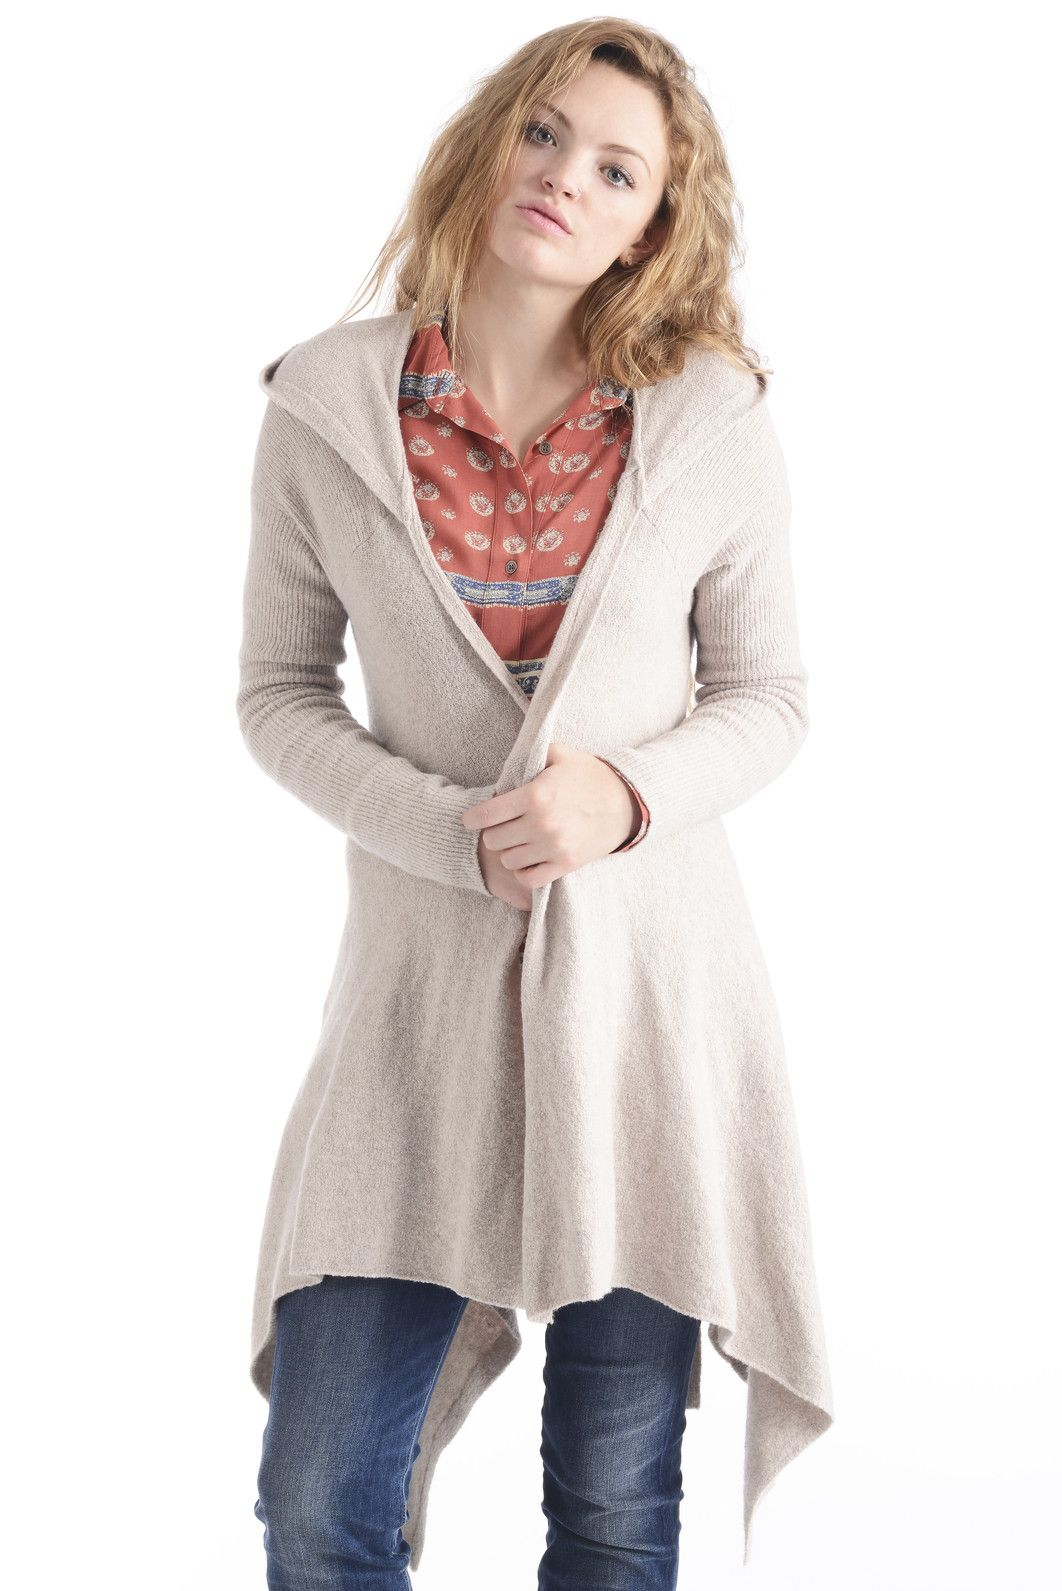 Free People Sloane Hooded Wrap Cardigan Sweater in OATMEAL ...